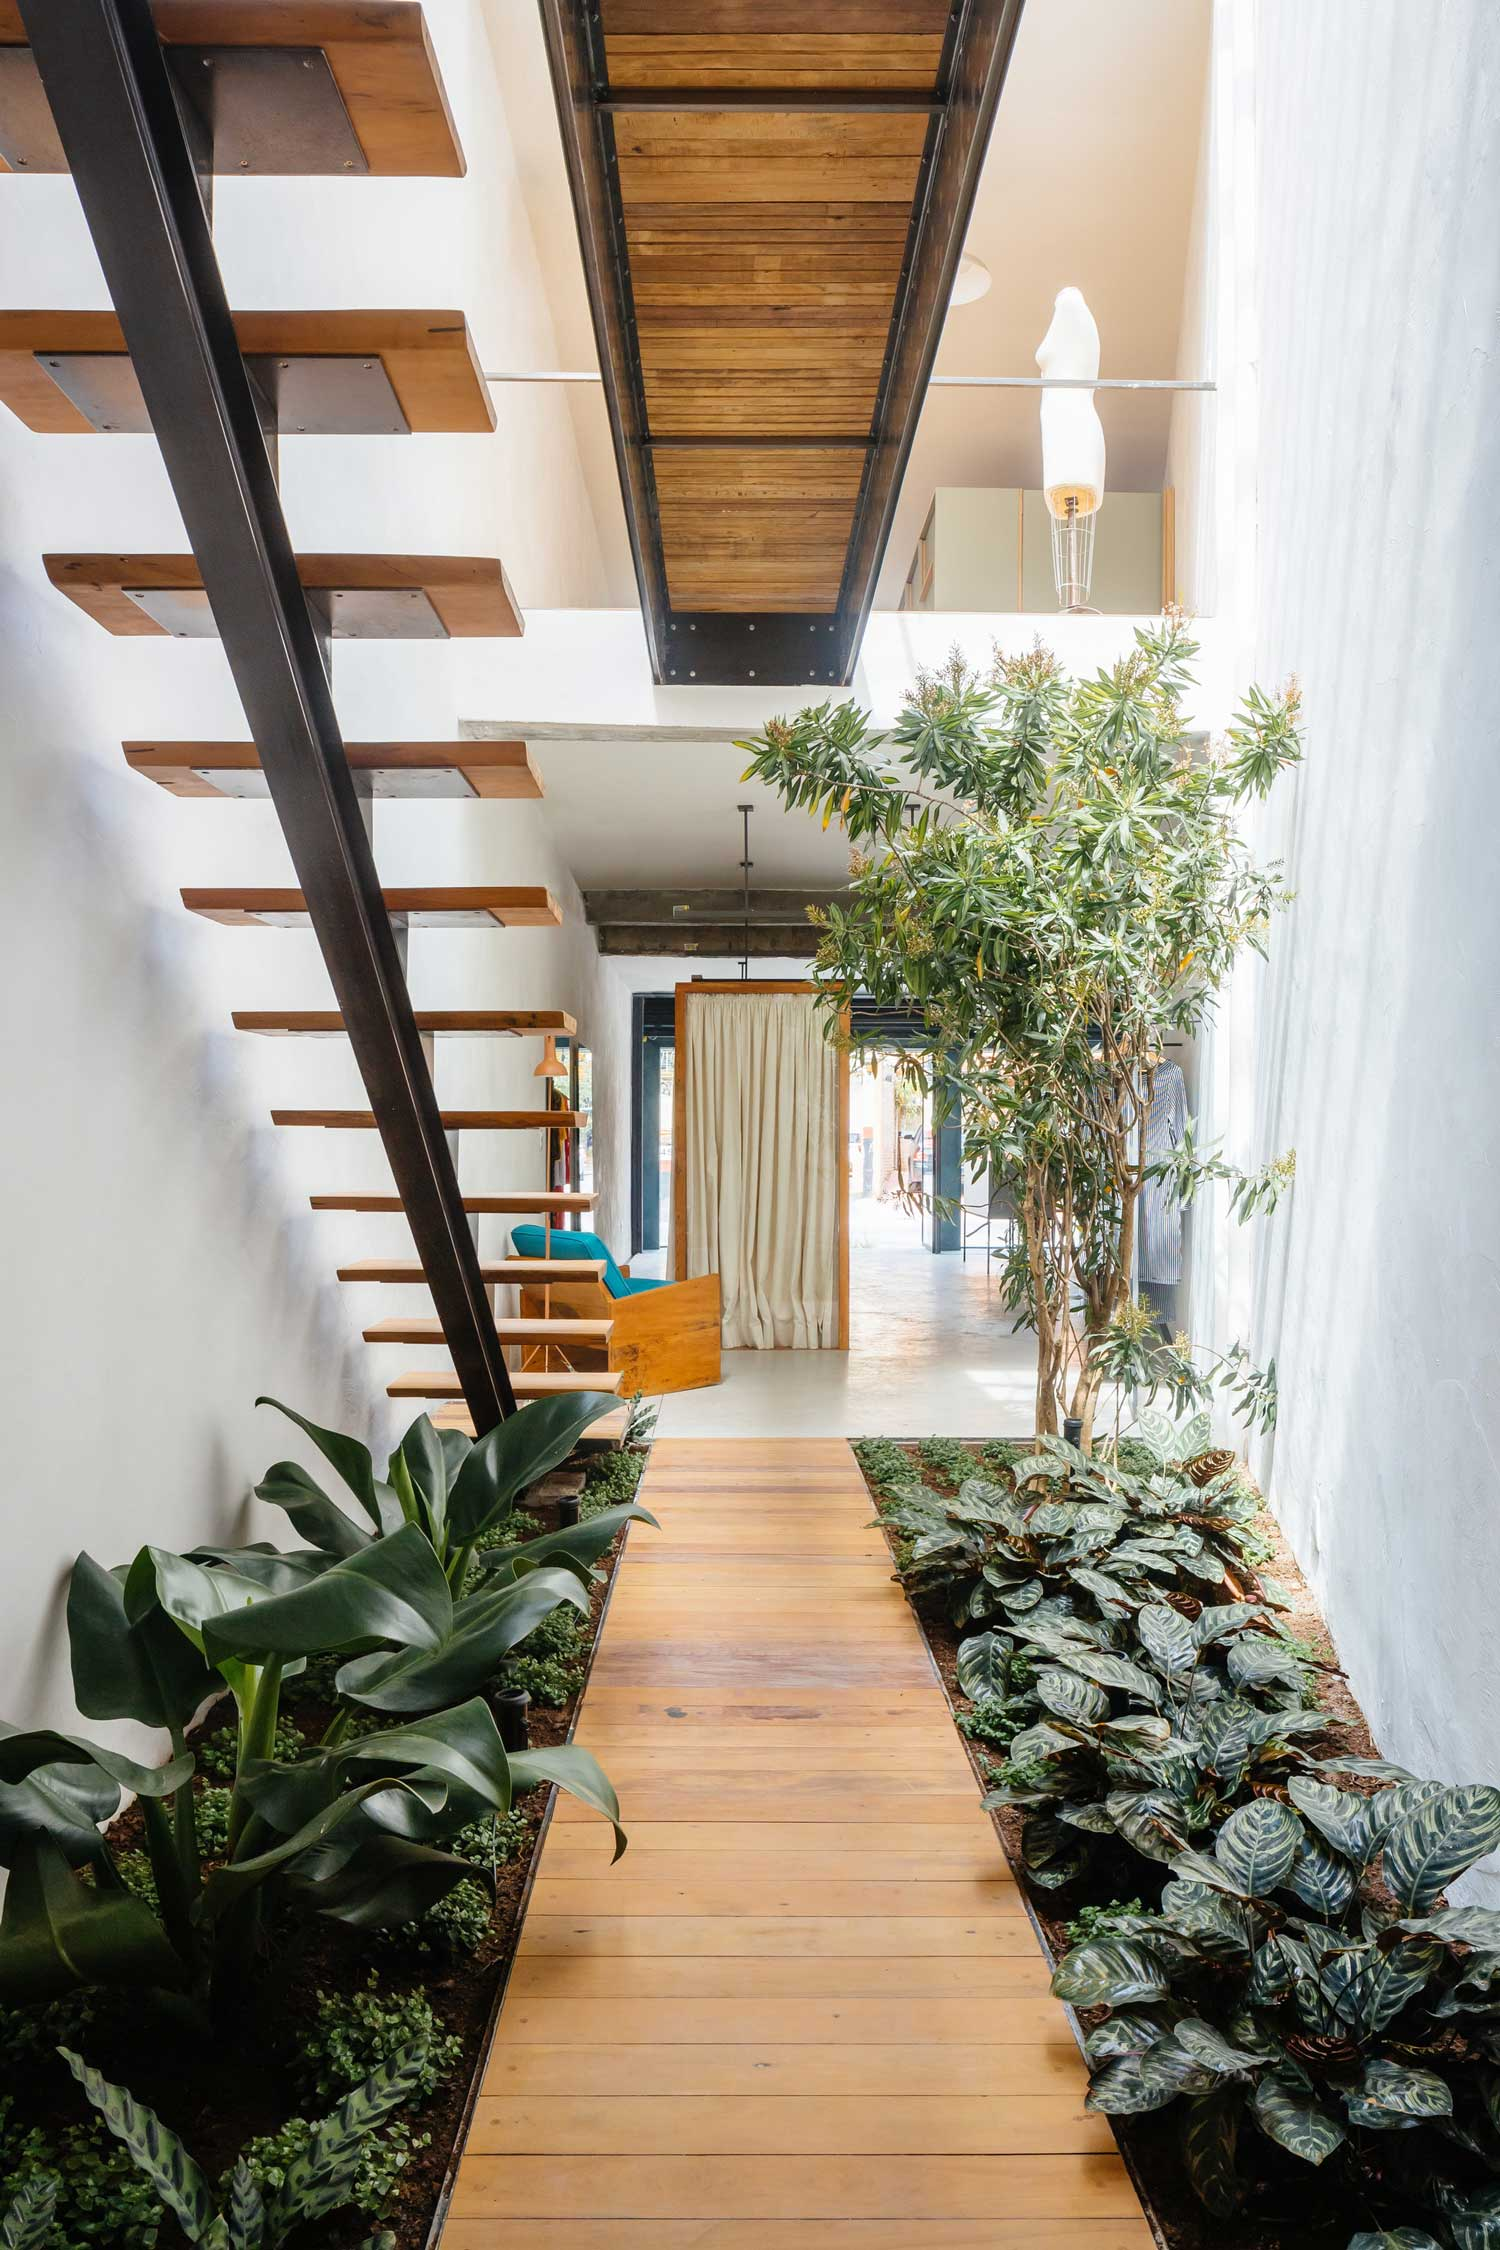 Retail Store With An Indoor Garden In São Paulo, Brazil By Vão | Yellowtrace